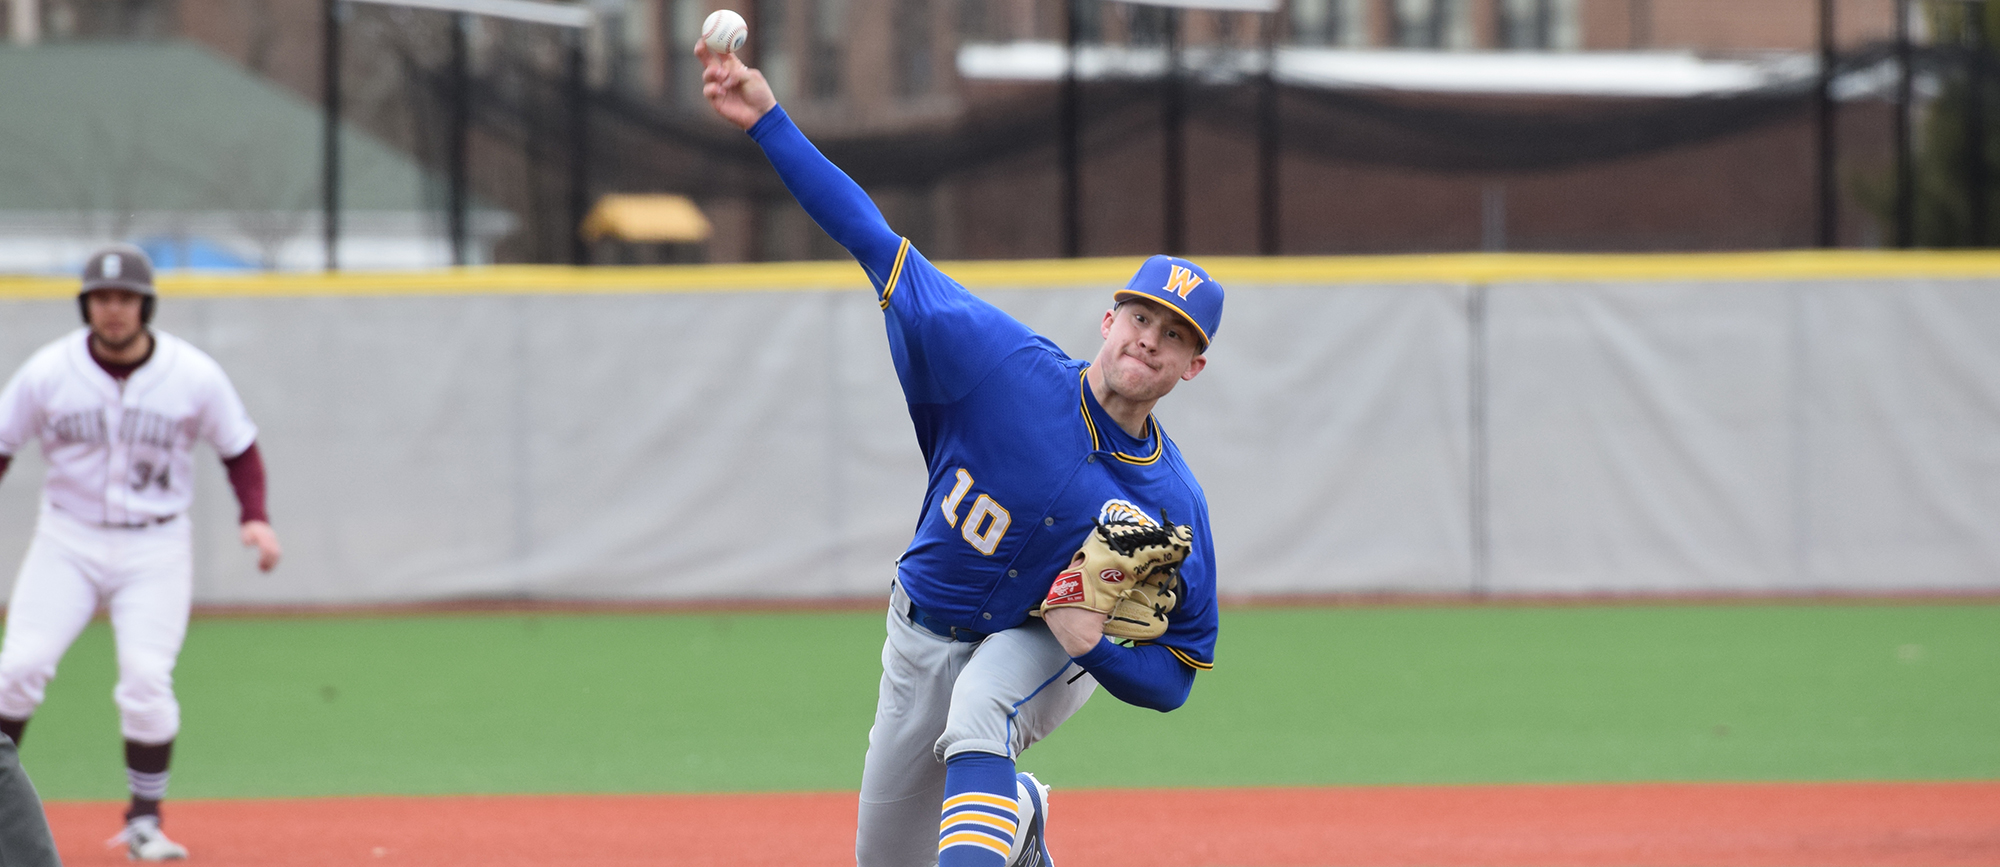 Junior Paul Wetmore struck out eight batters over five shutout innings in Western New England's season-opening loss to Springfield College on Sunday. (Photo by Rachael Margossian)